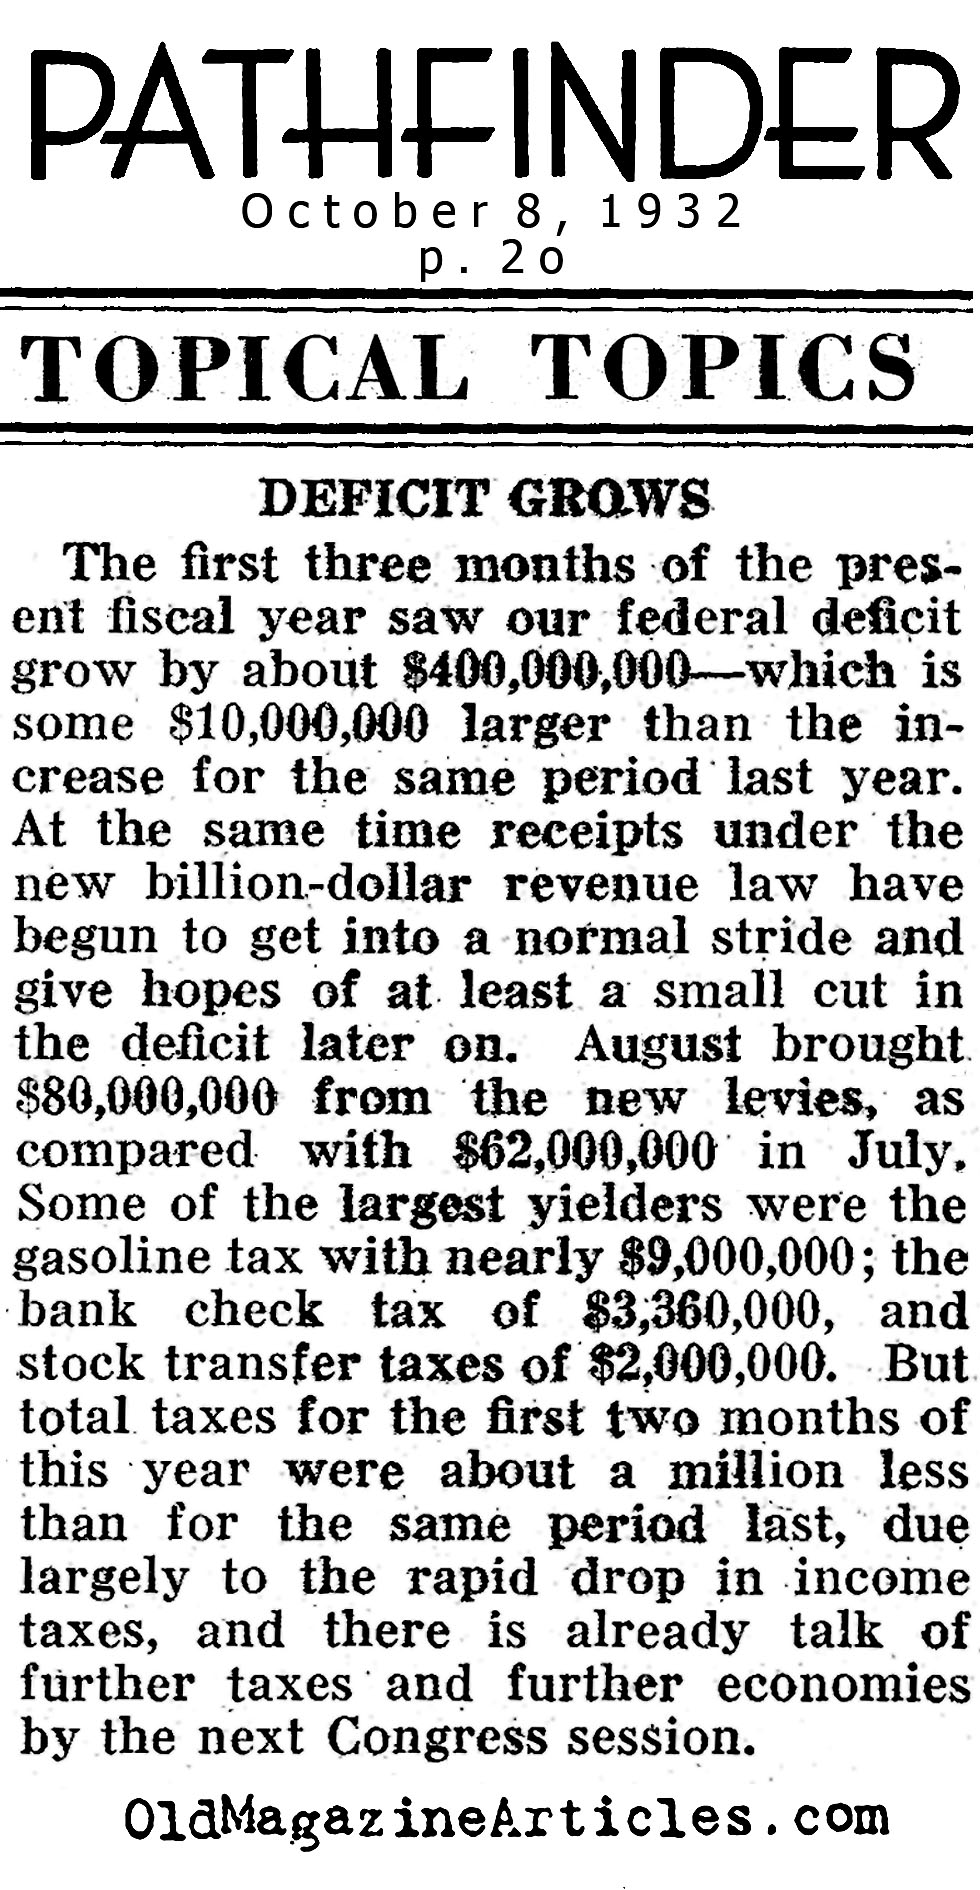 The Growth of the Deficit (Pathfinder Magazine, 1932)